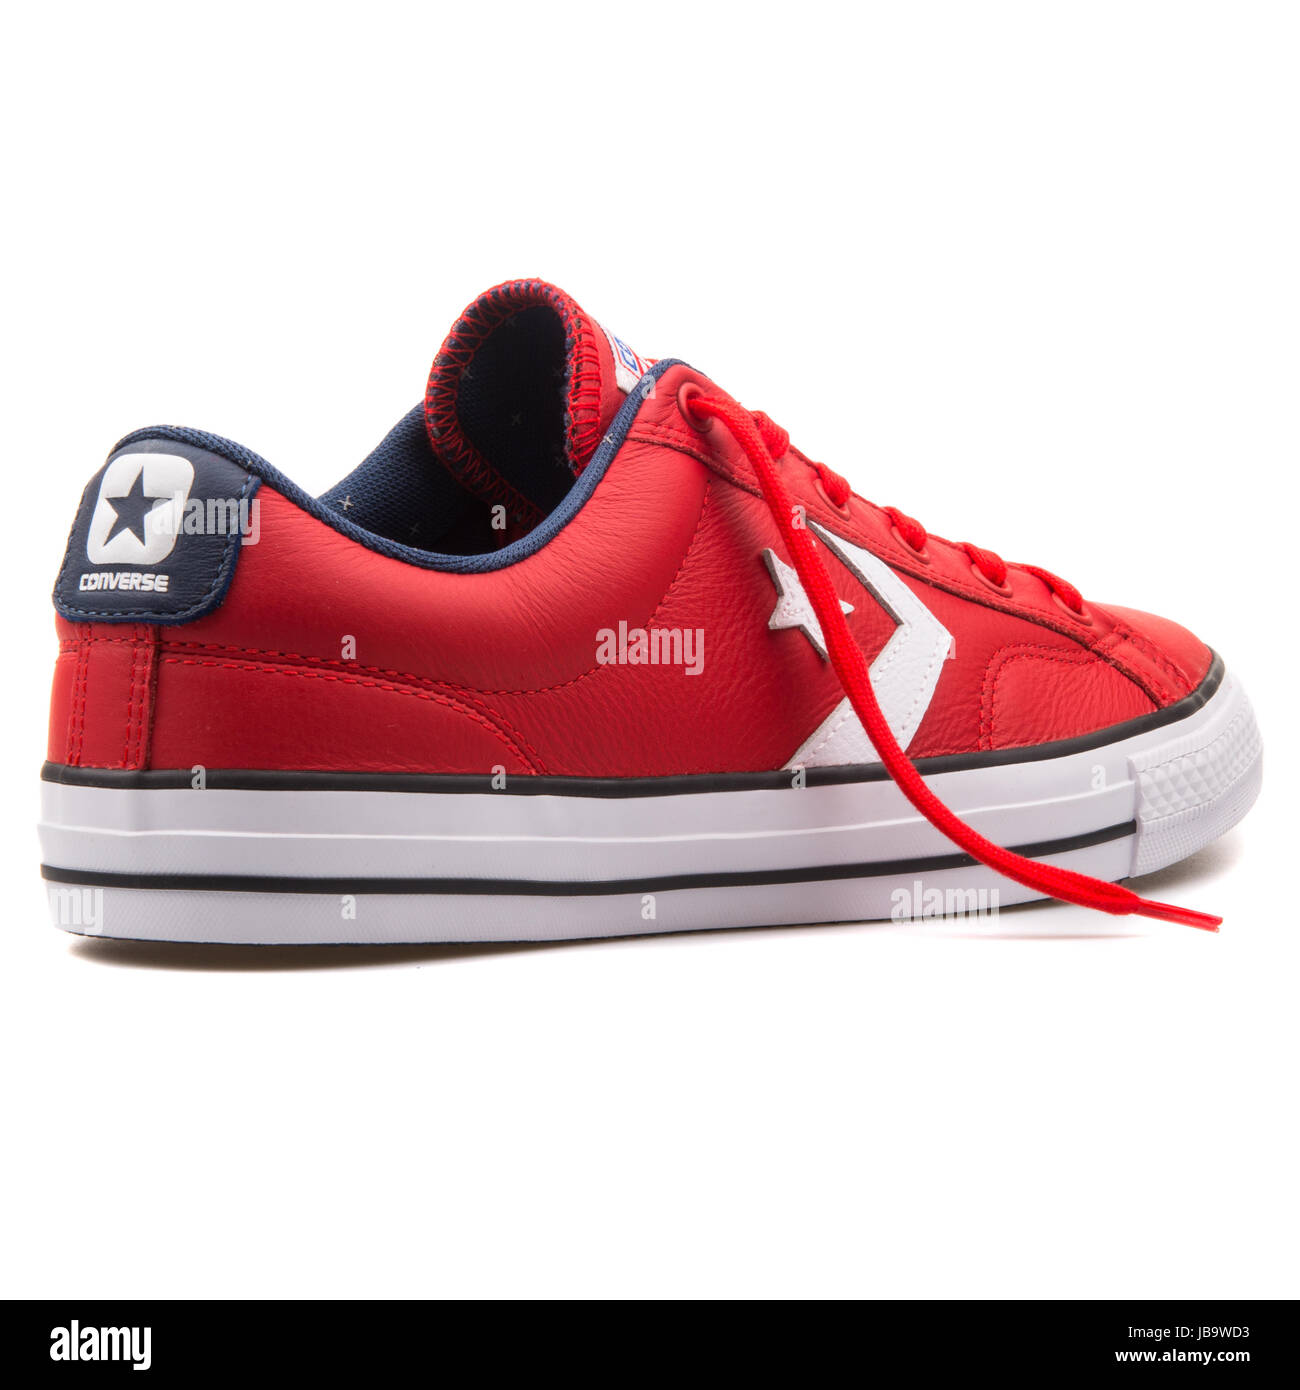 d42edd705012d9 Converse Chuck Taylor All Star Player OX Red Leather and Casino White  Unisex Shoes - 149770C